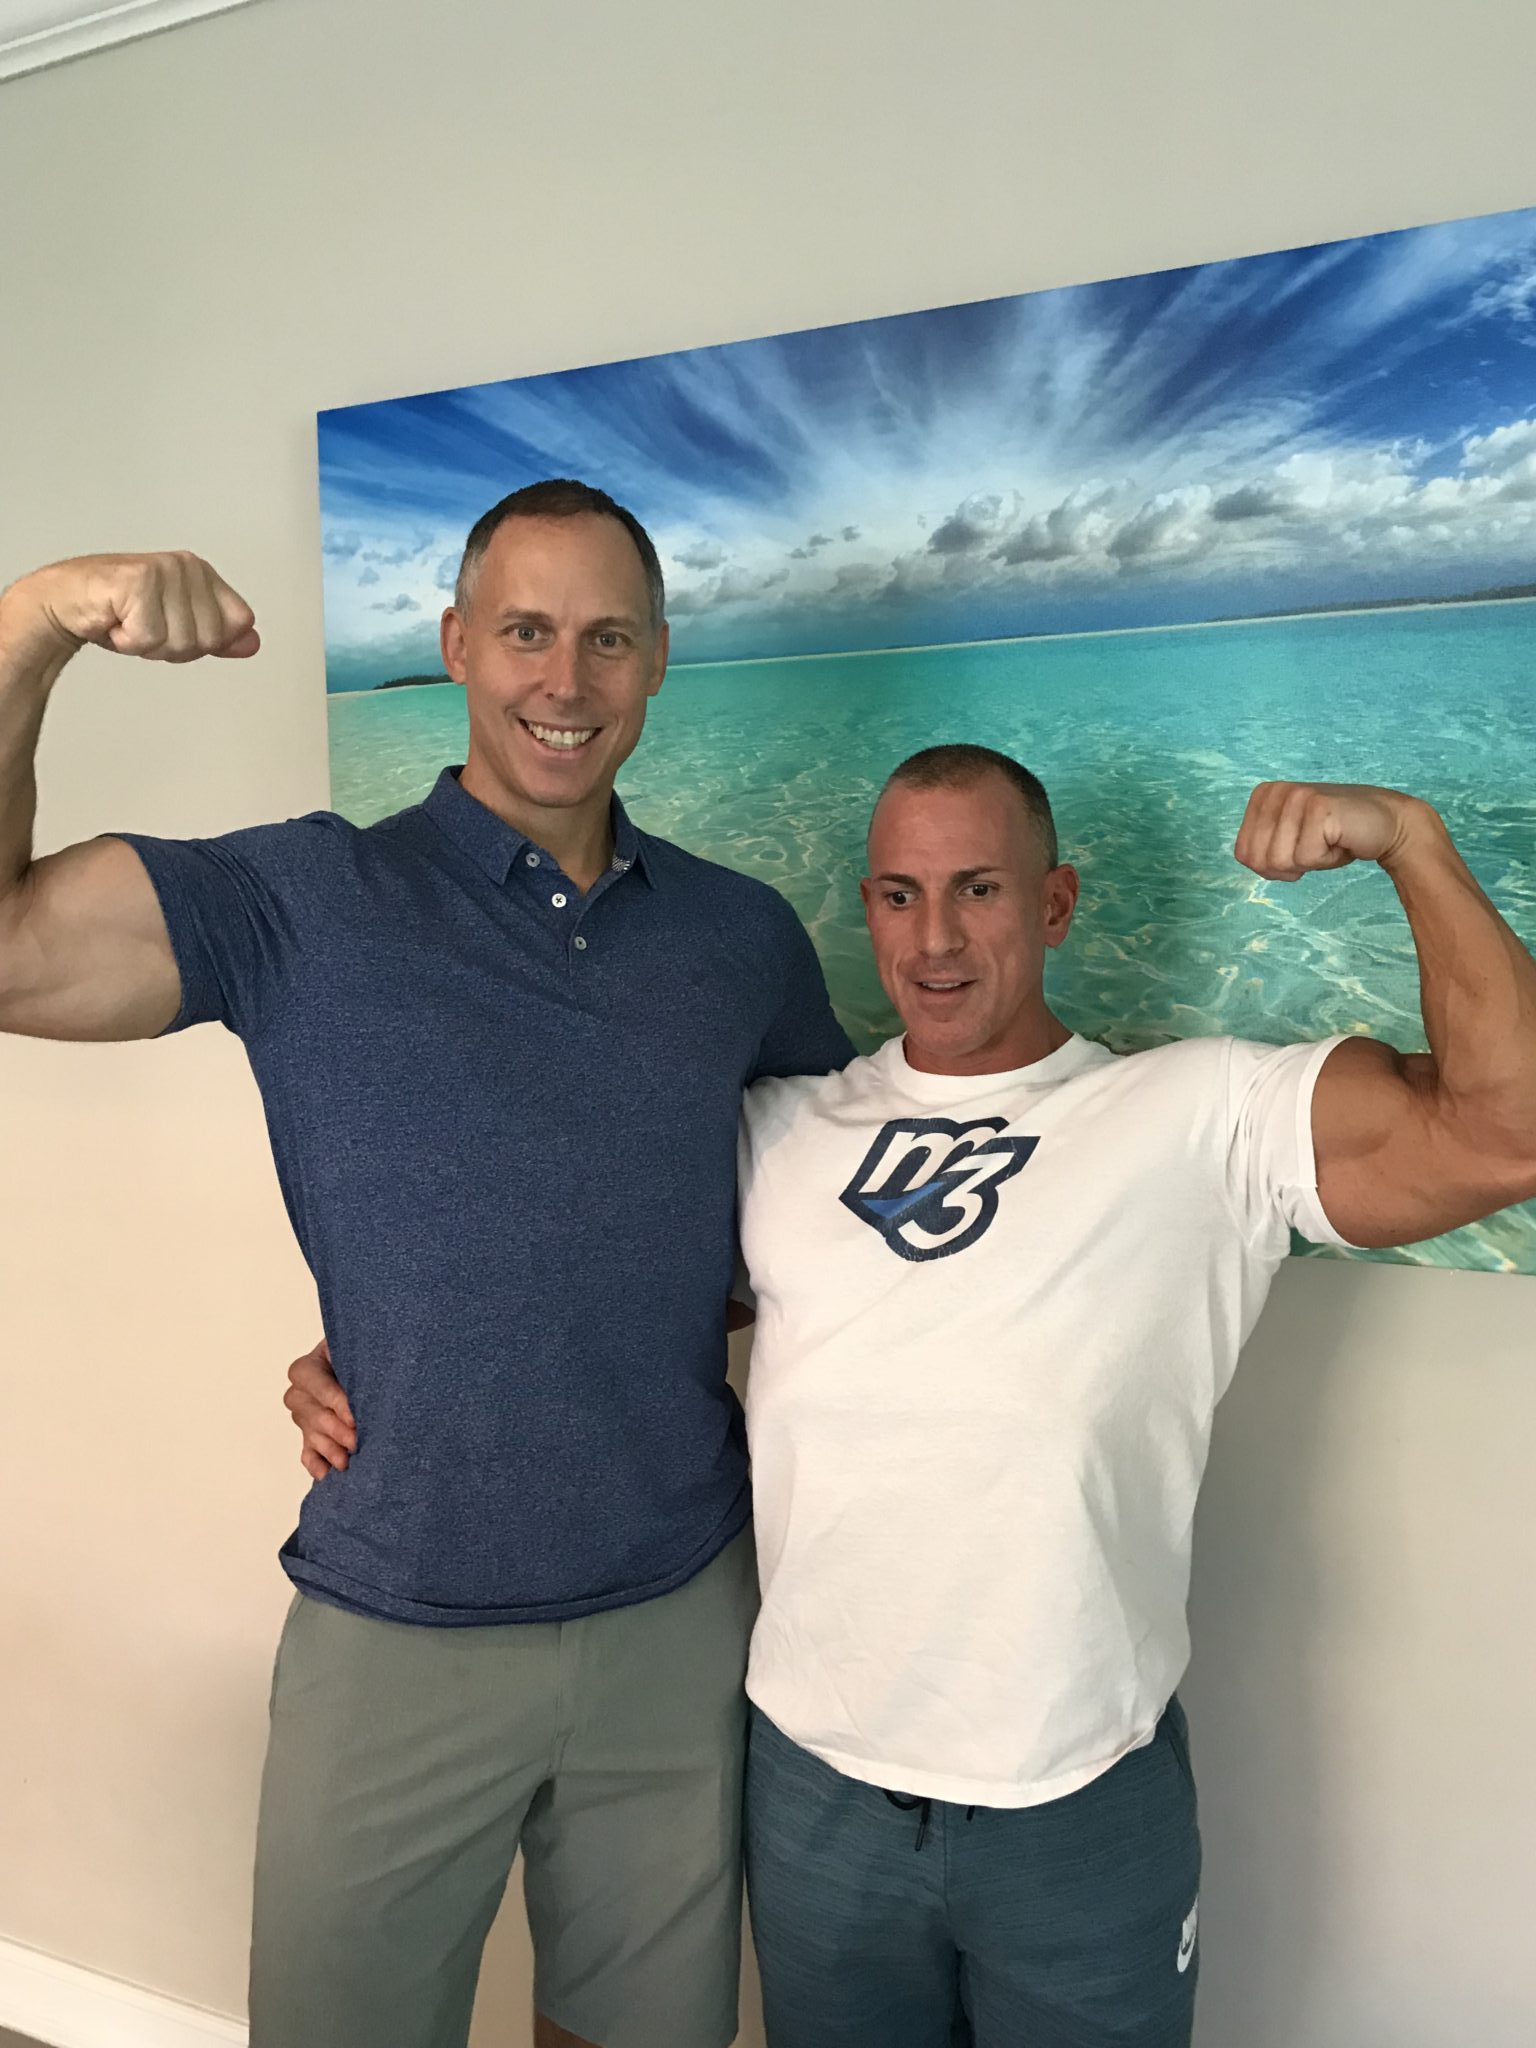 Miles Beccia and Greg Rando of Mind Muscle Memory e1533941800212 6 Secrets To Get Unstuck and Start Getting More Success from Your Workouts